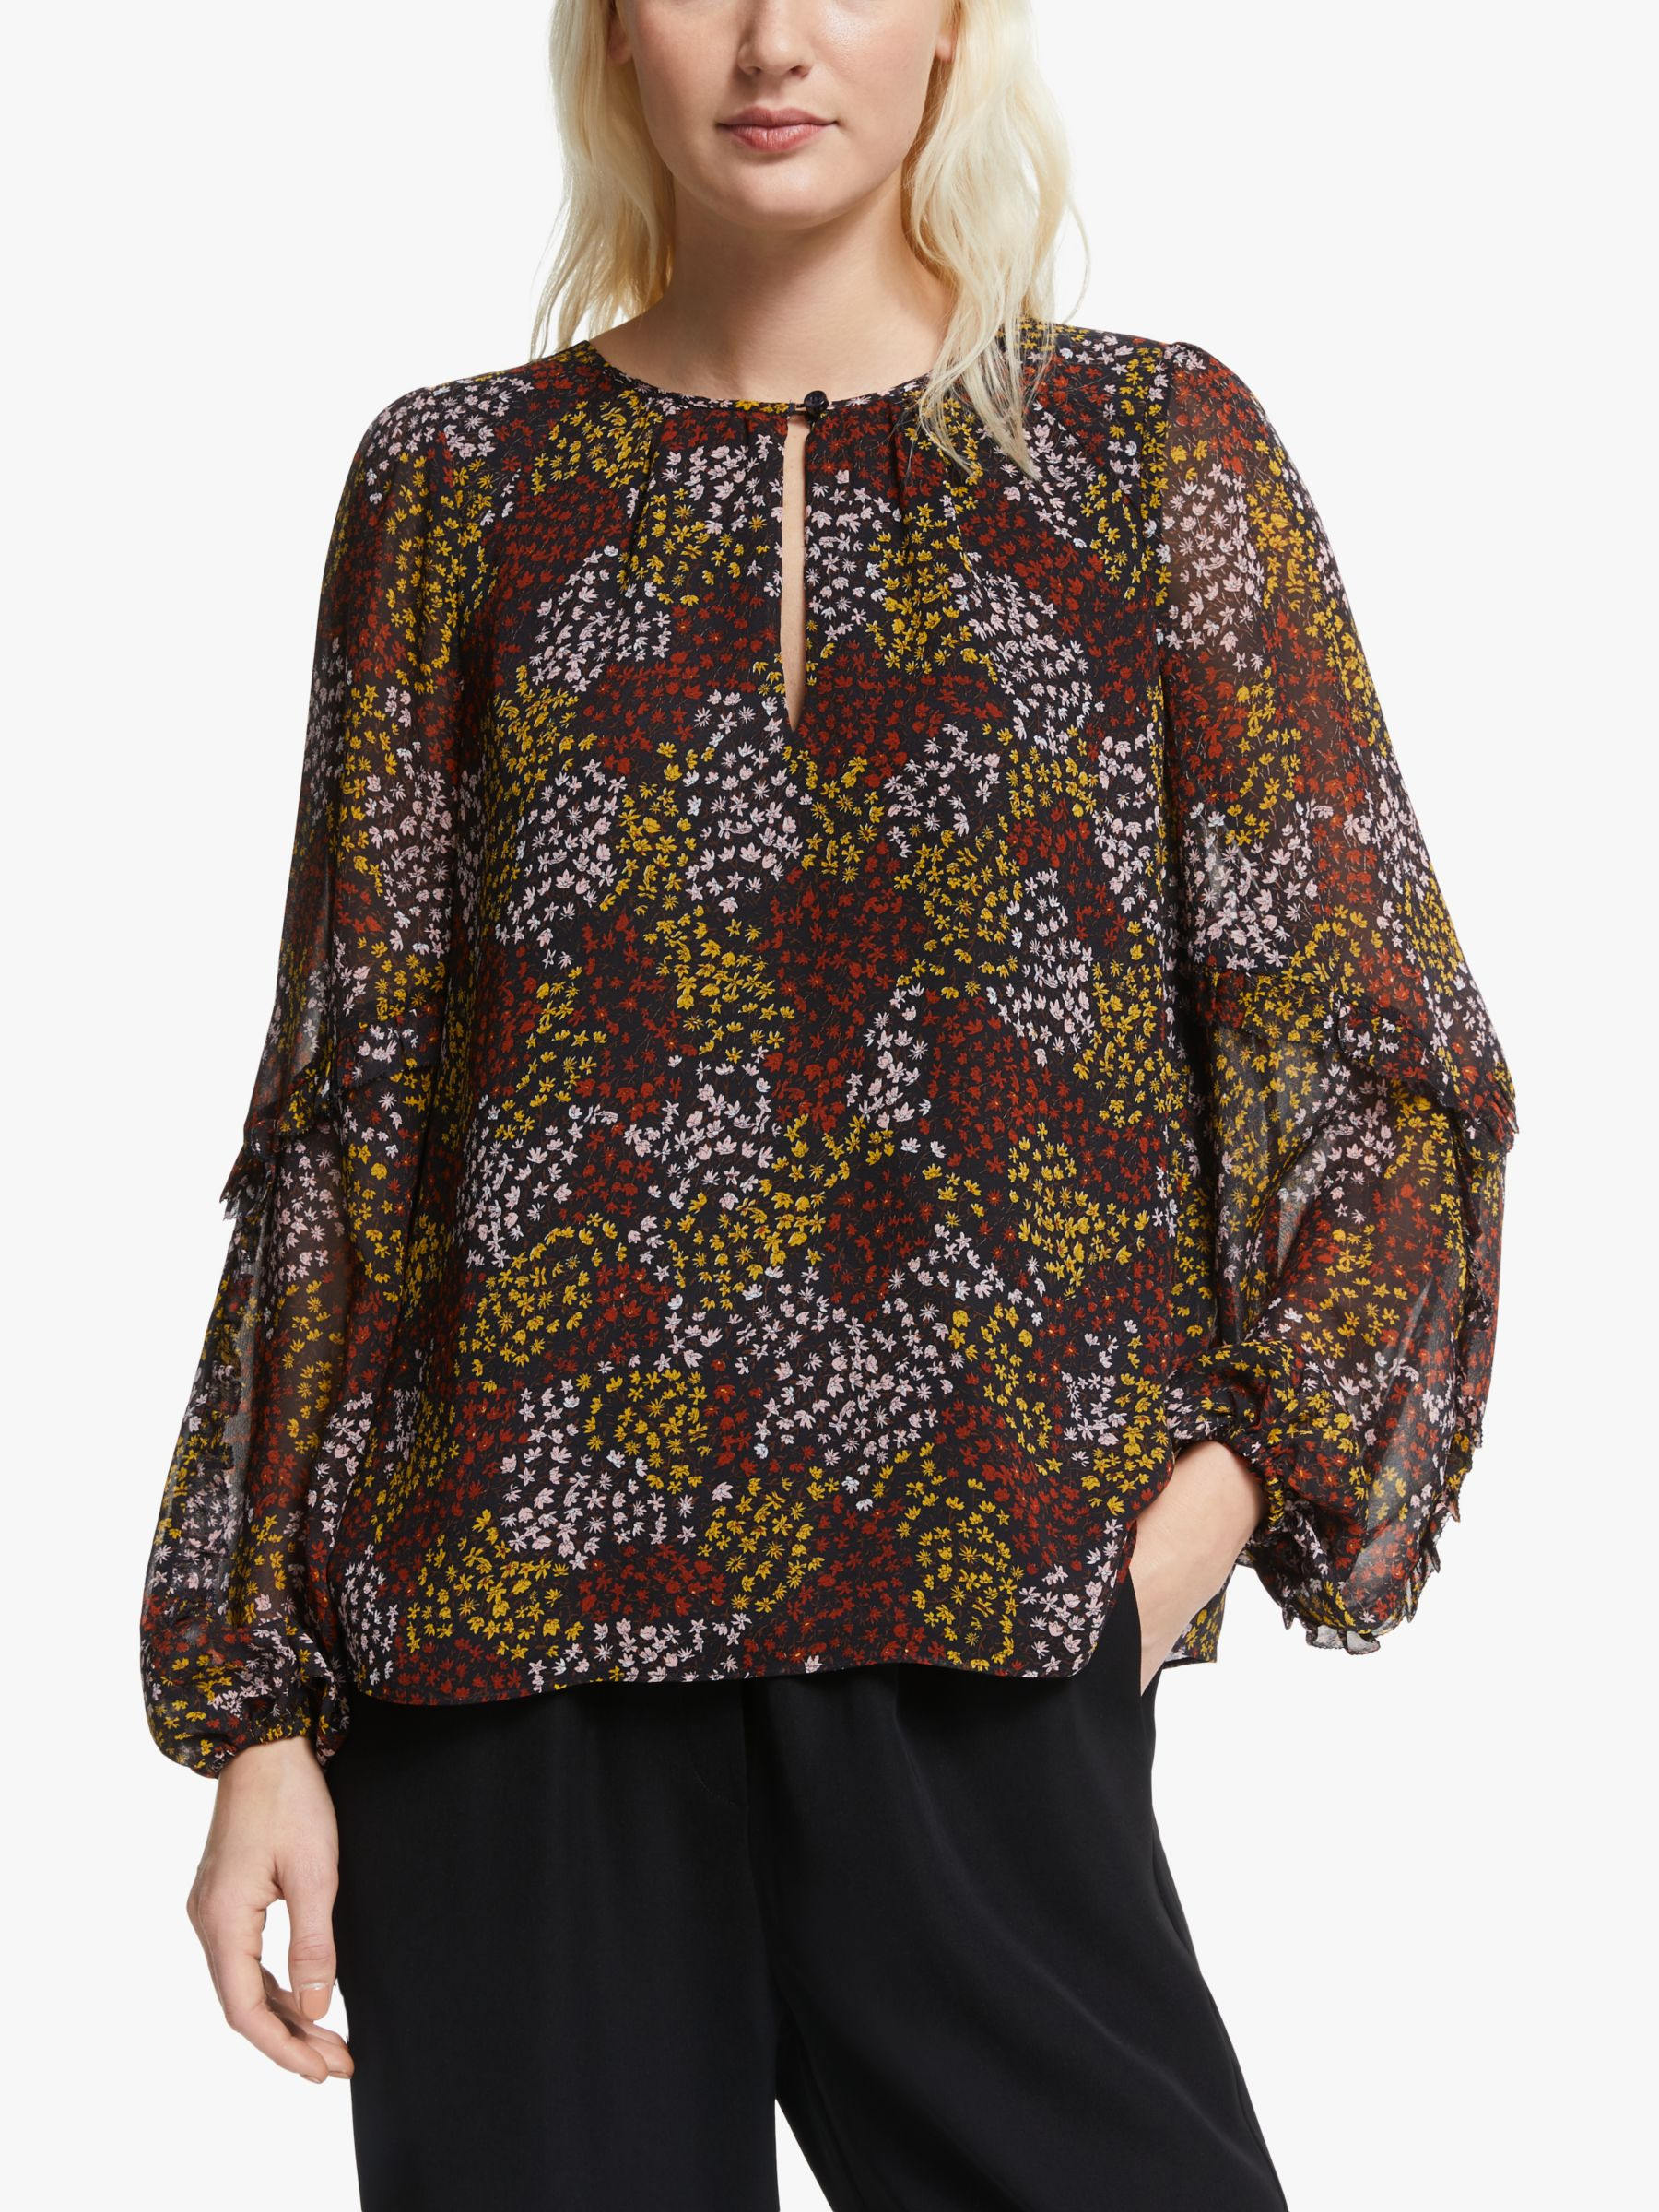 Joie Joie Baltasar Silk Top, Midnight